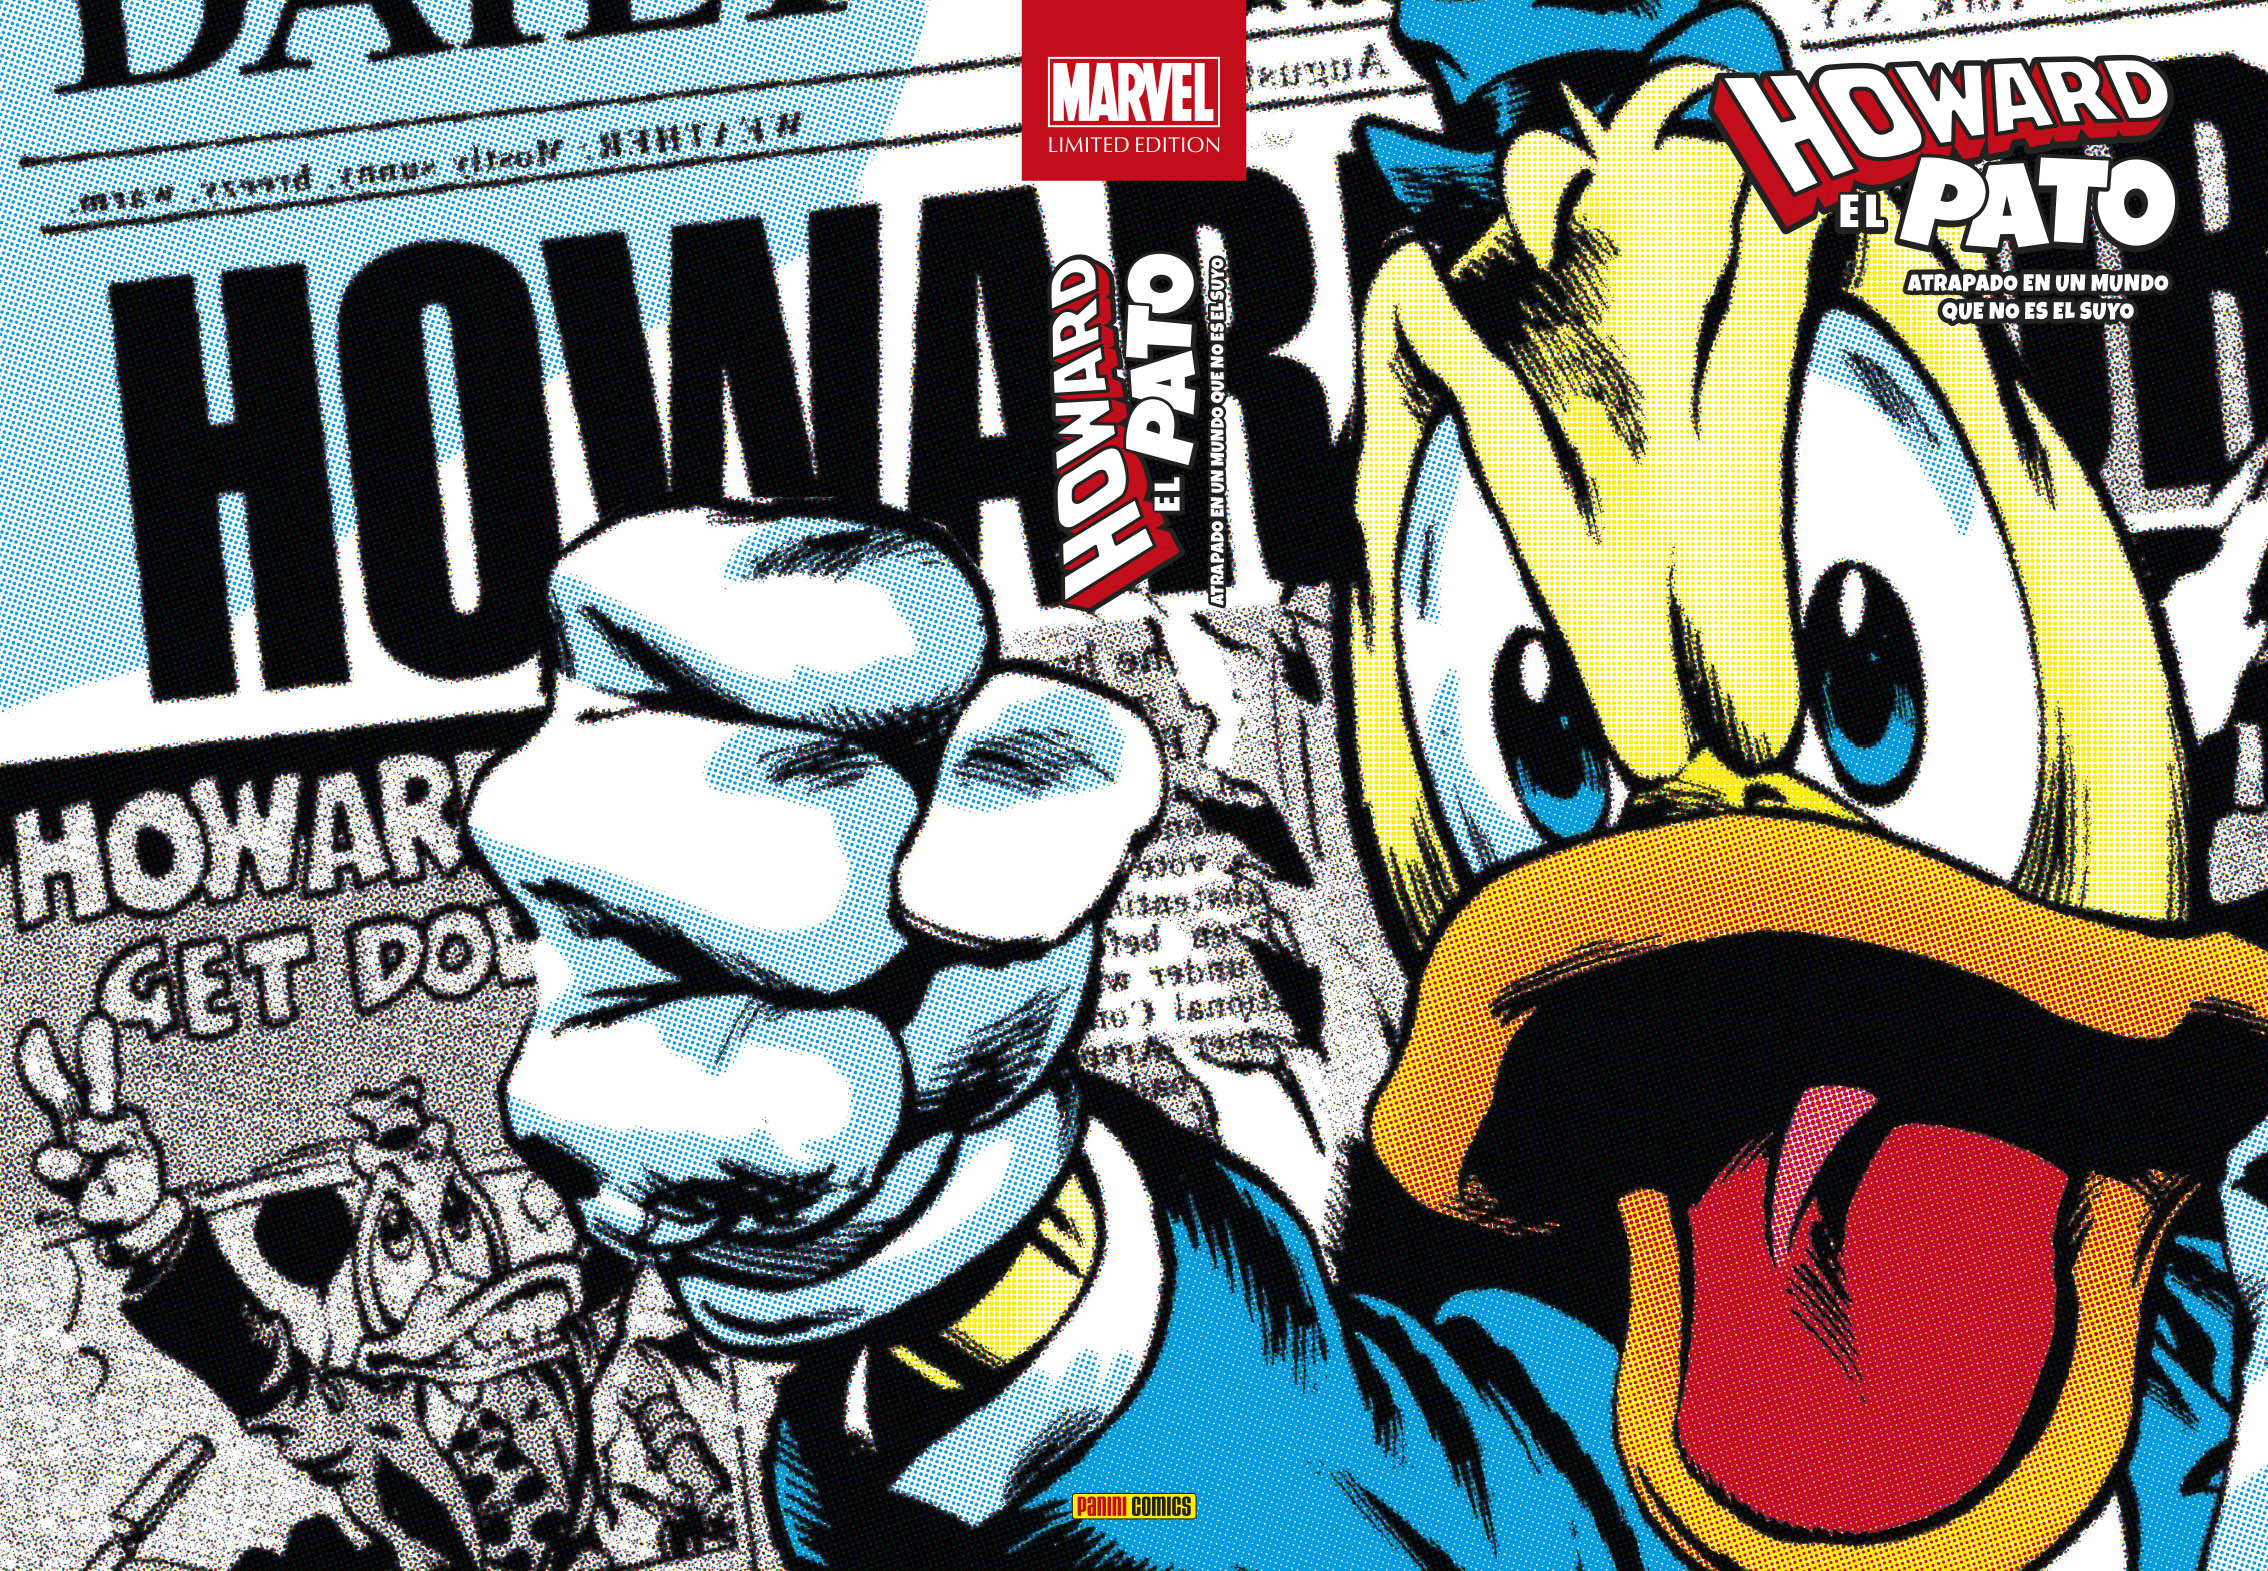 Marvel Limited Edition. Howard el Pato Atrapado en un mundo que no es el suyo